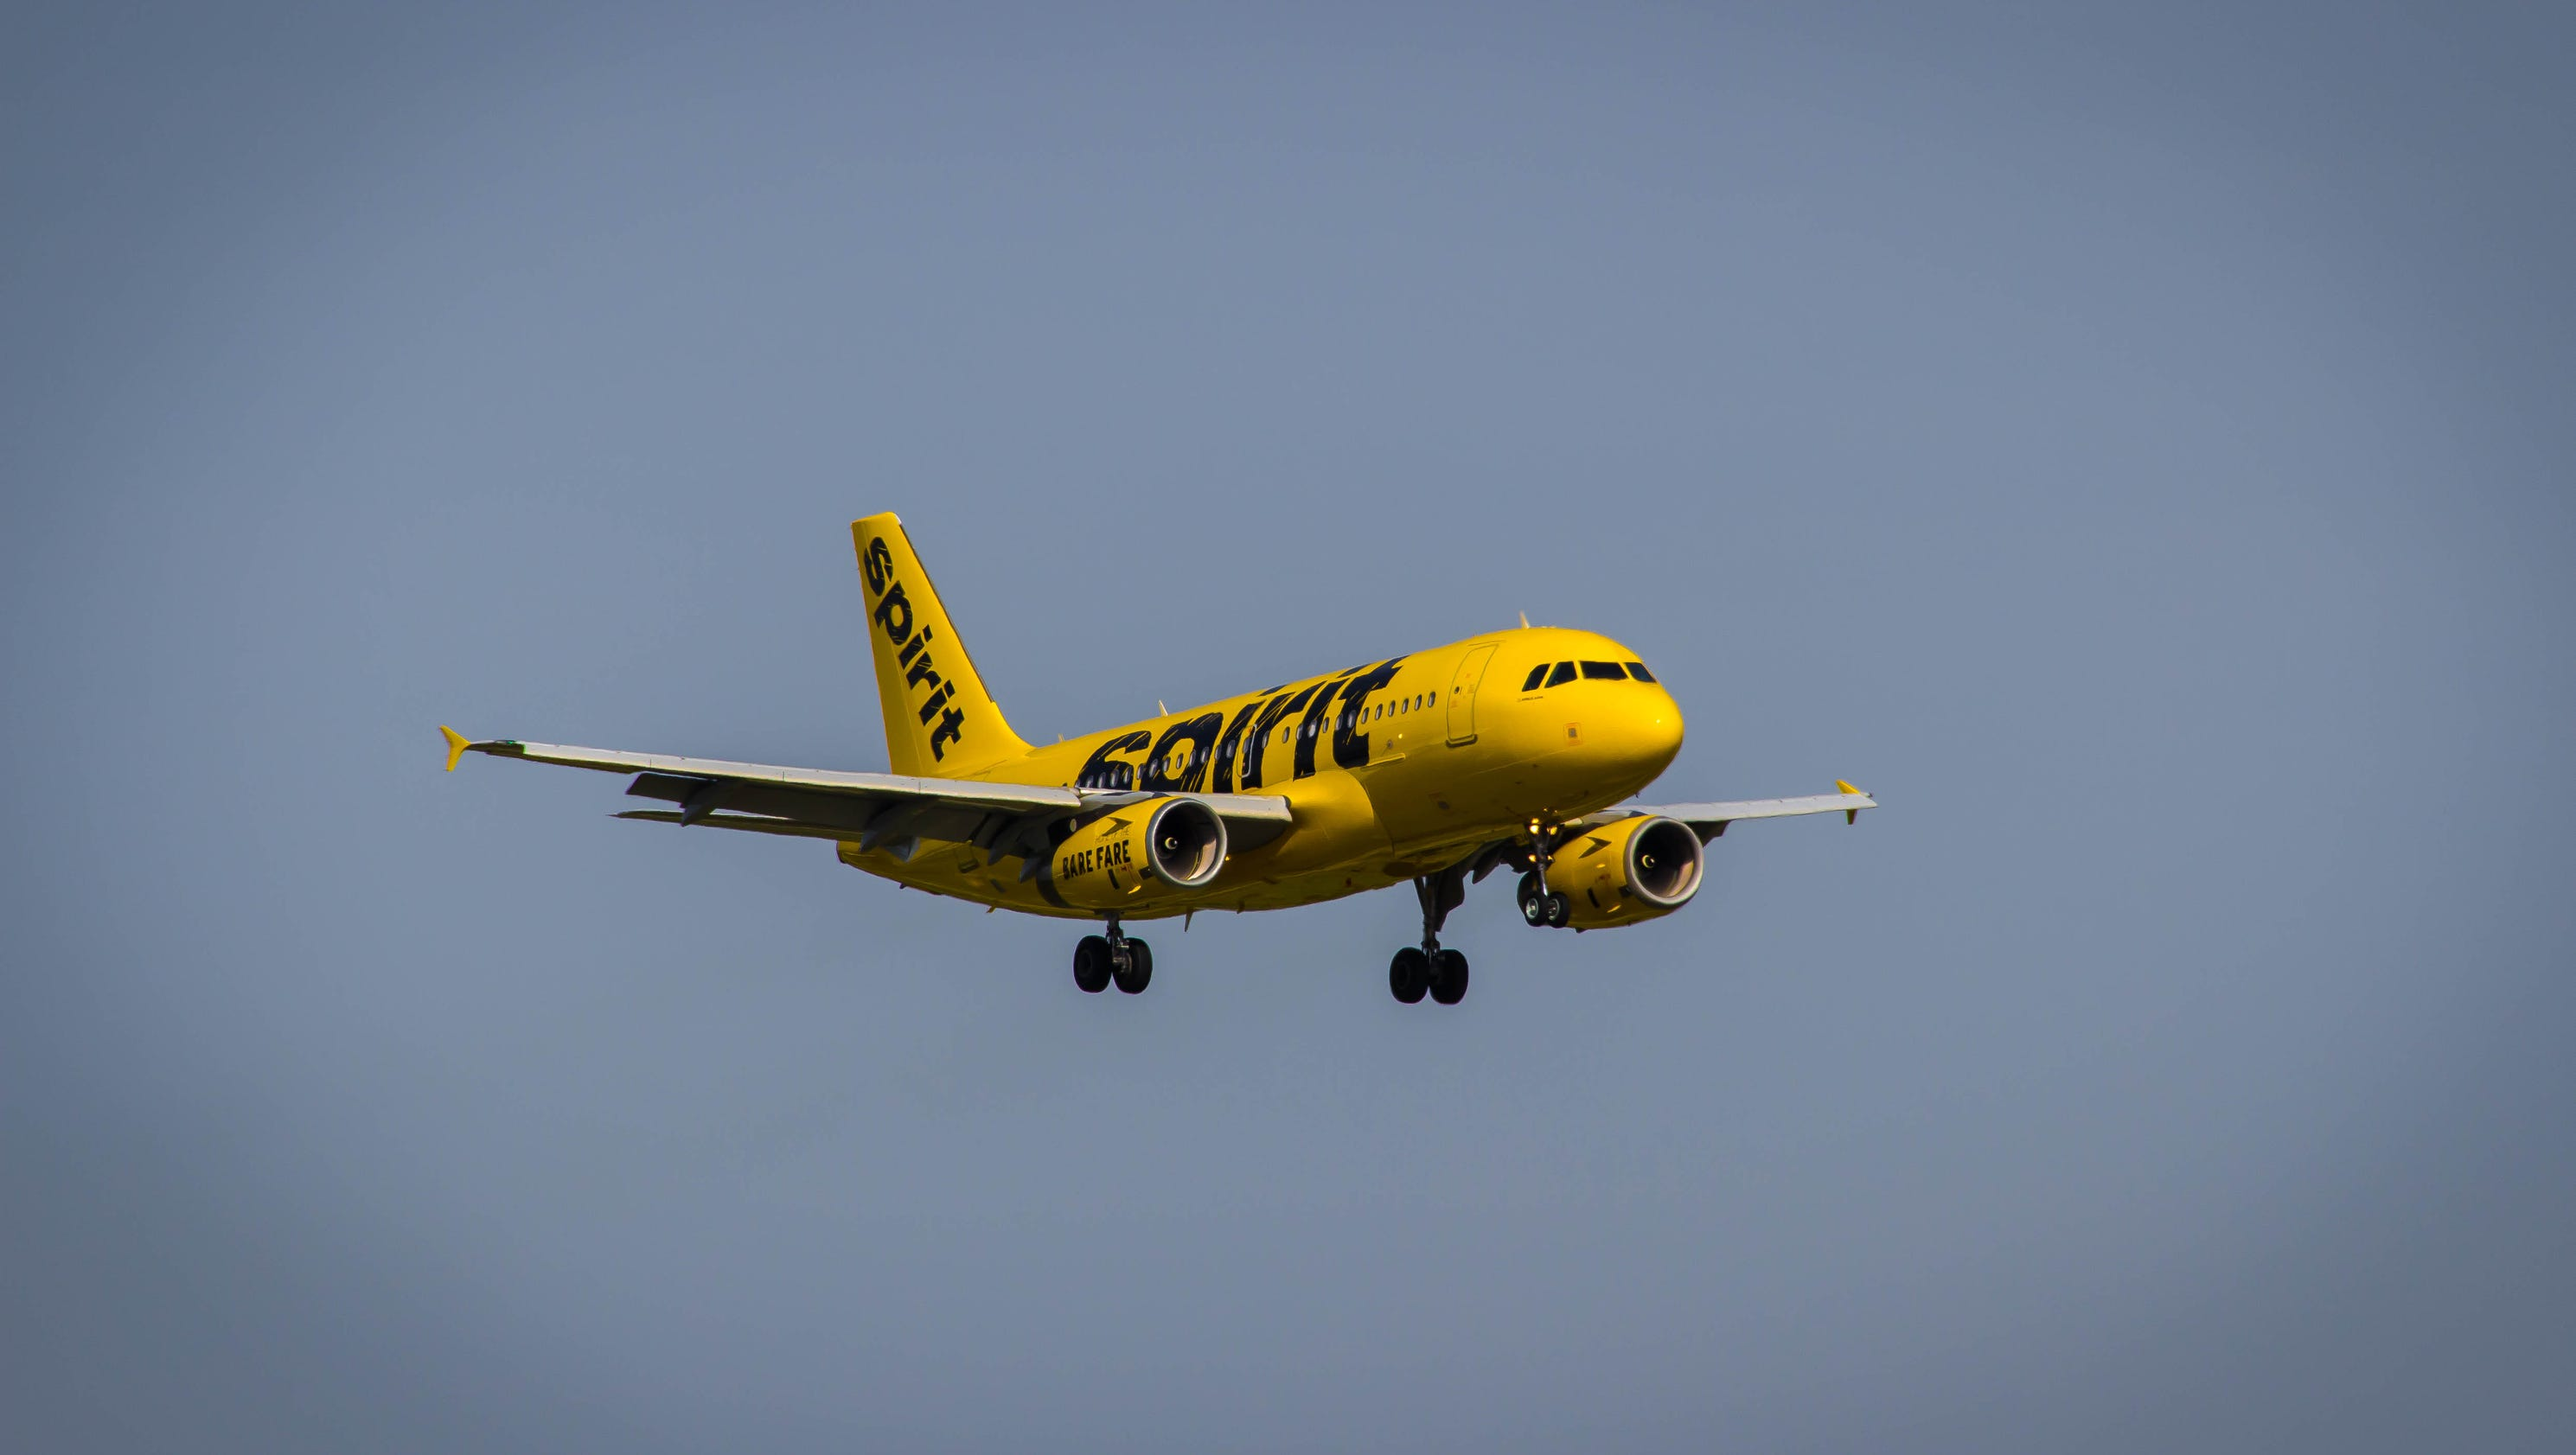 Growing spirit now up to 10 routes from baltimore 12 from for Book a flight with spirit airlines